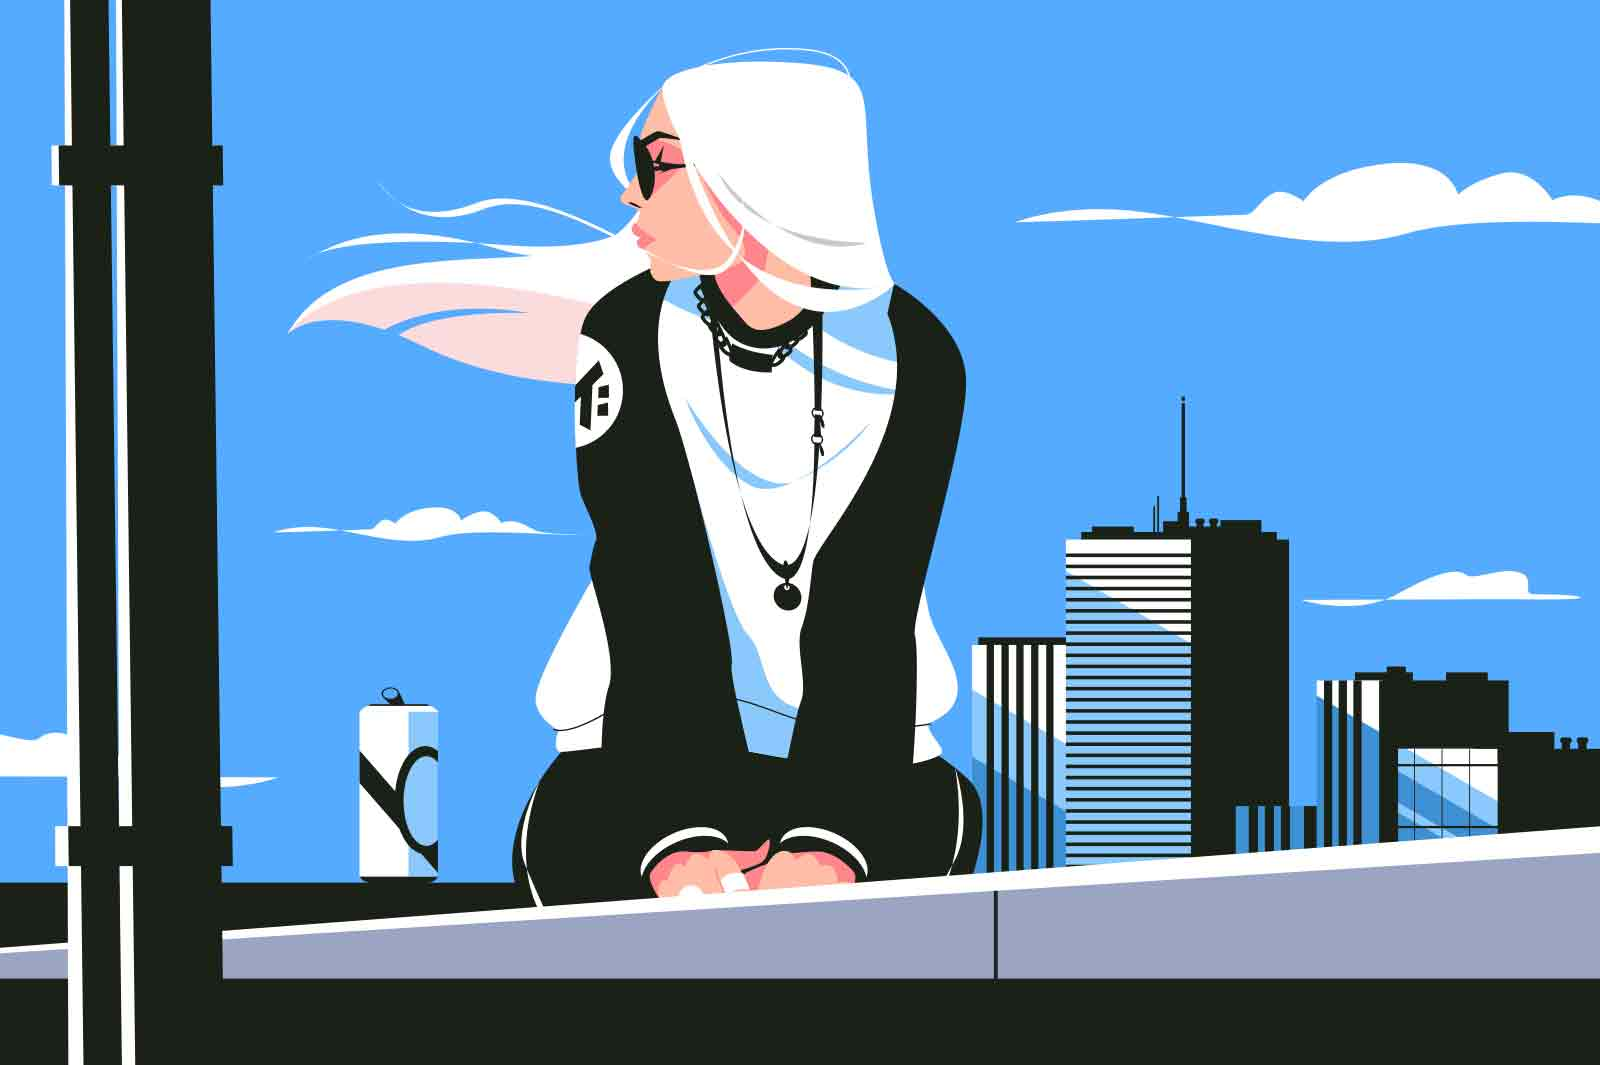 Girl sitting on building roof vector illustration. Woman in pensive mood dreaming on high roof flat style. Time alone and sadness concept. City urban constructions and blue sky on background